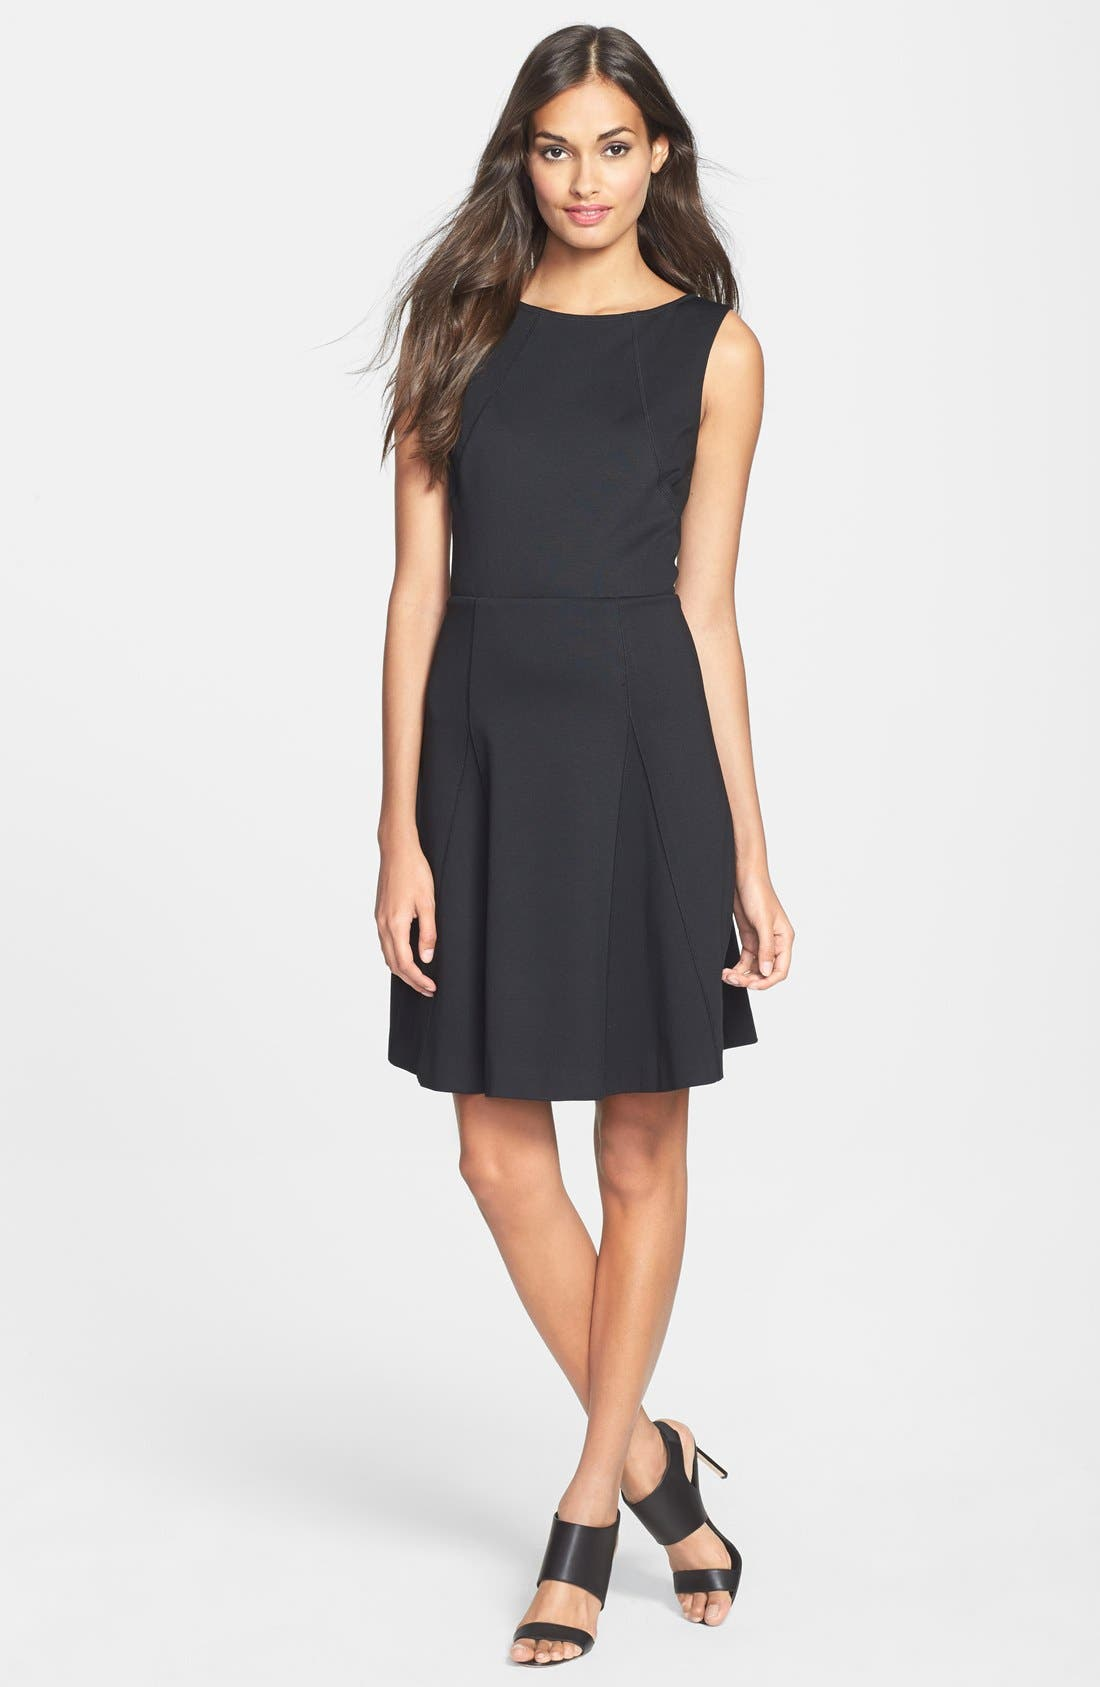 Main Image - Trina Turk 'Delphine' Cutout Ponte Knit Fit & Flare Dress